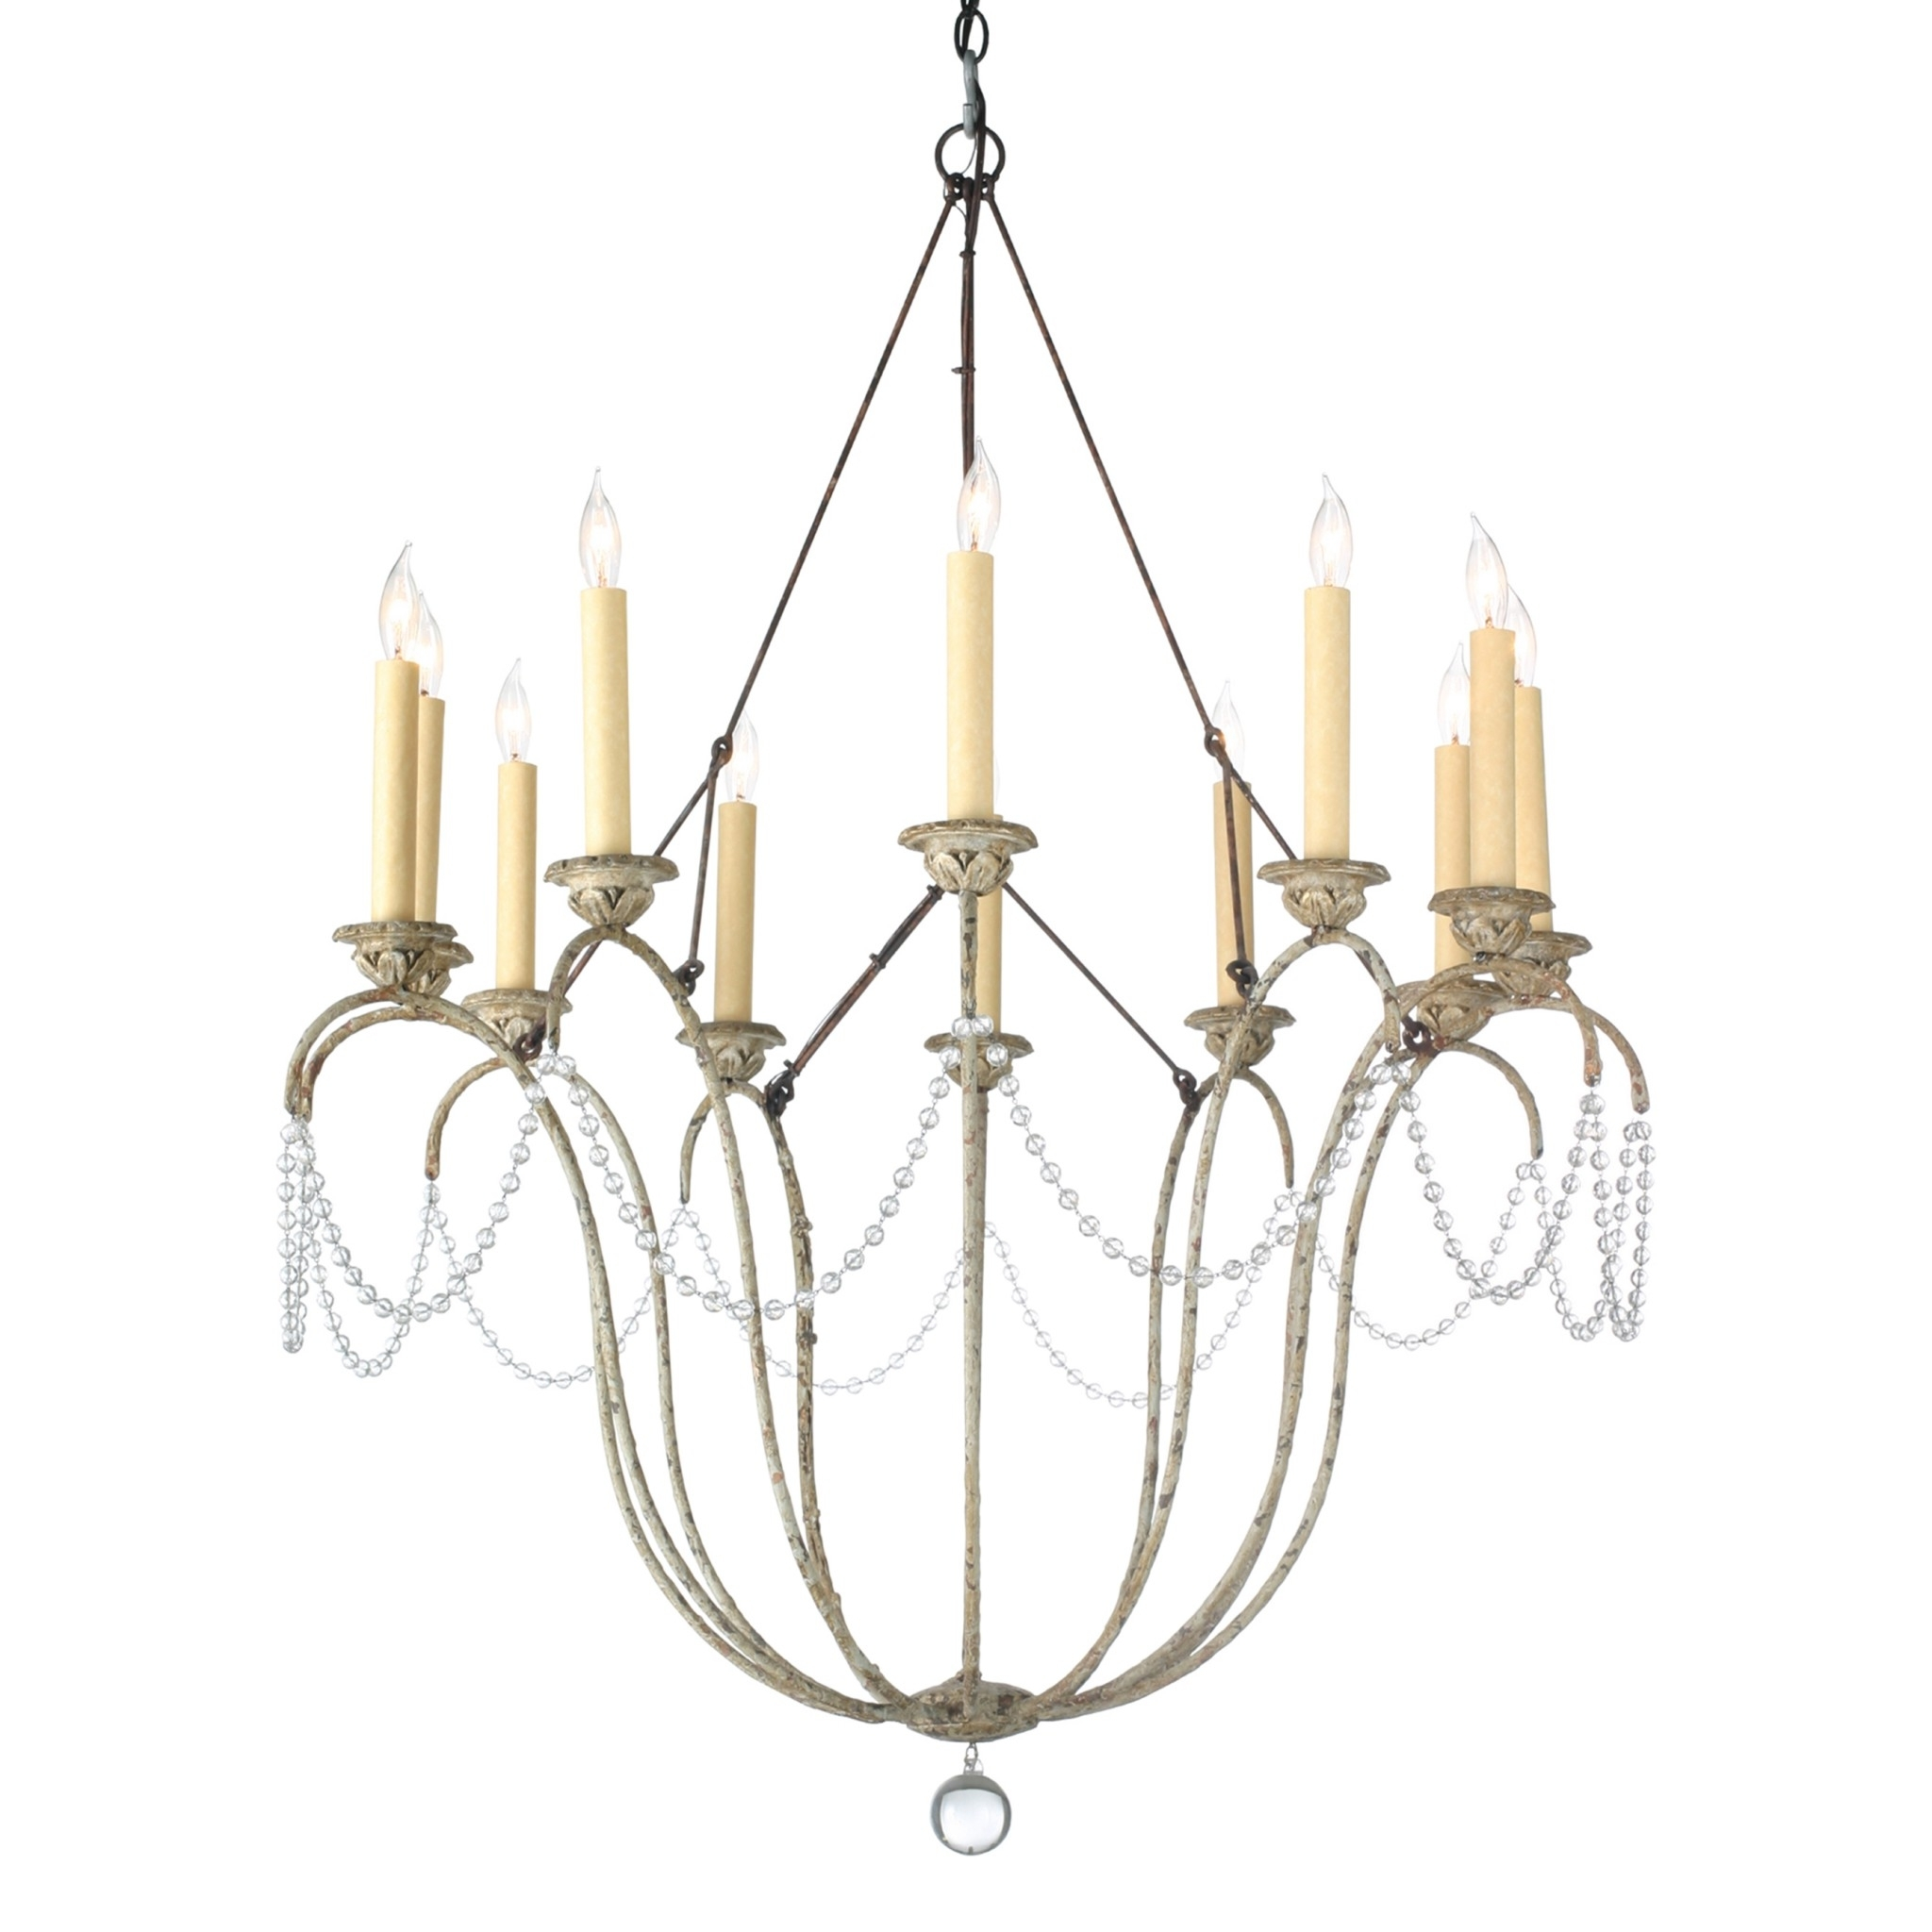 Most Recent Italian Chandeliers Contemporary For Italian Chandelier (View 14 of 15)